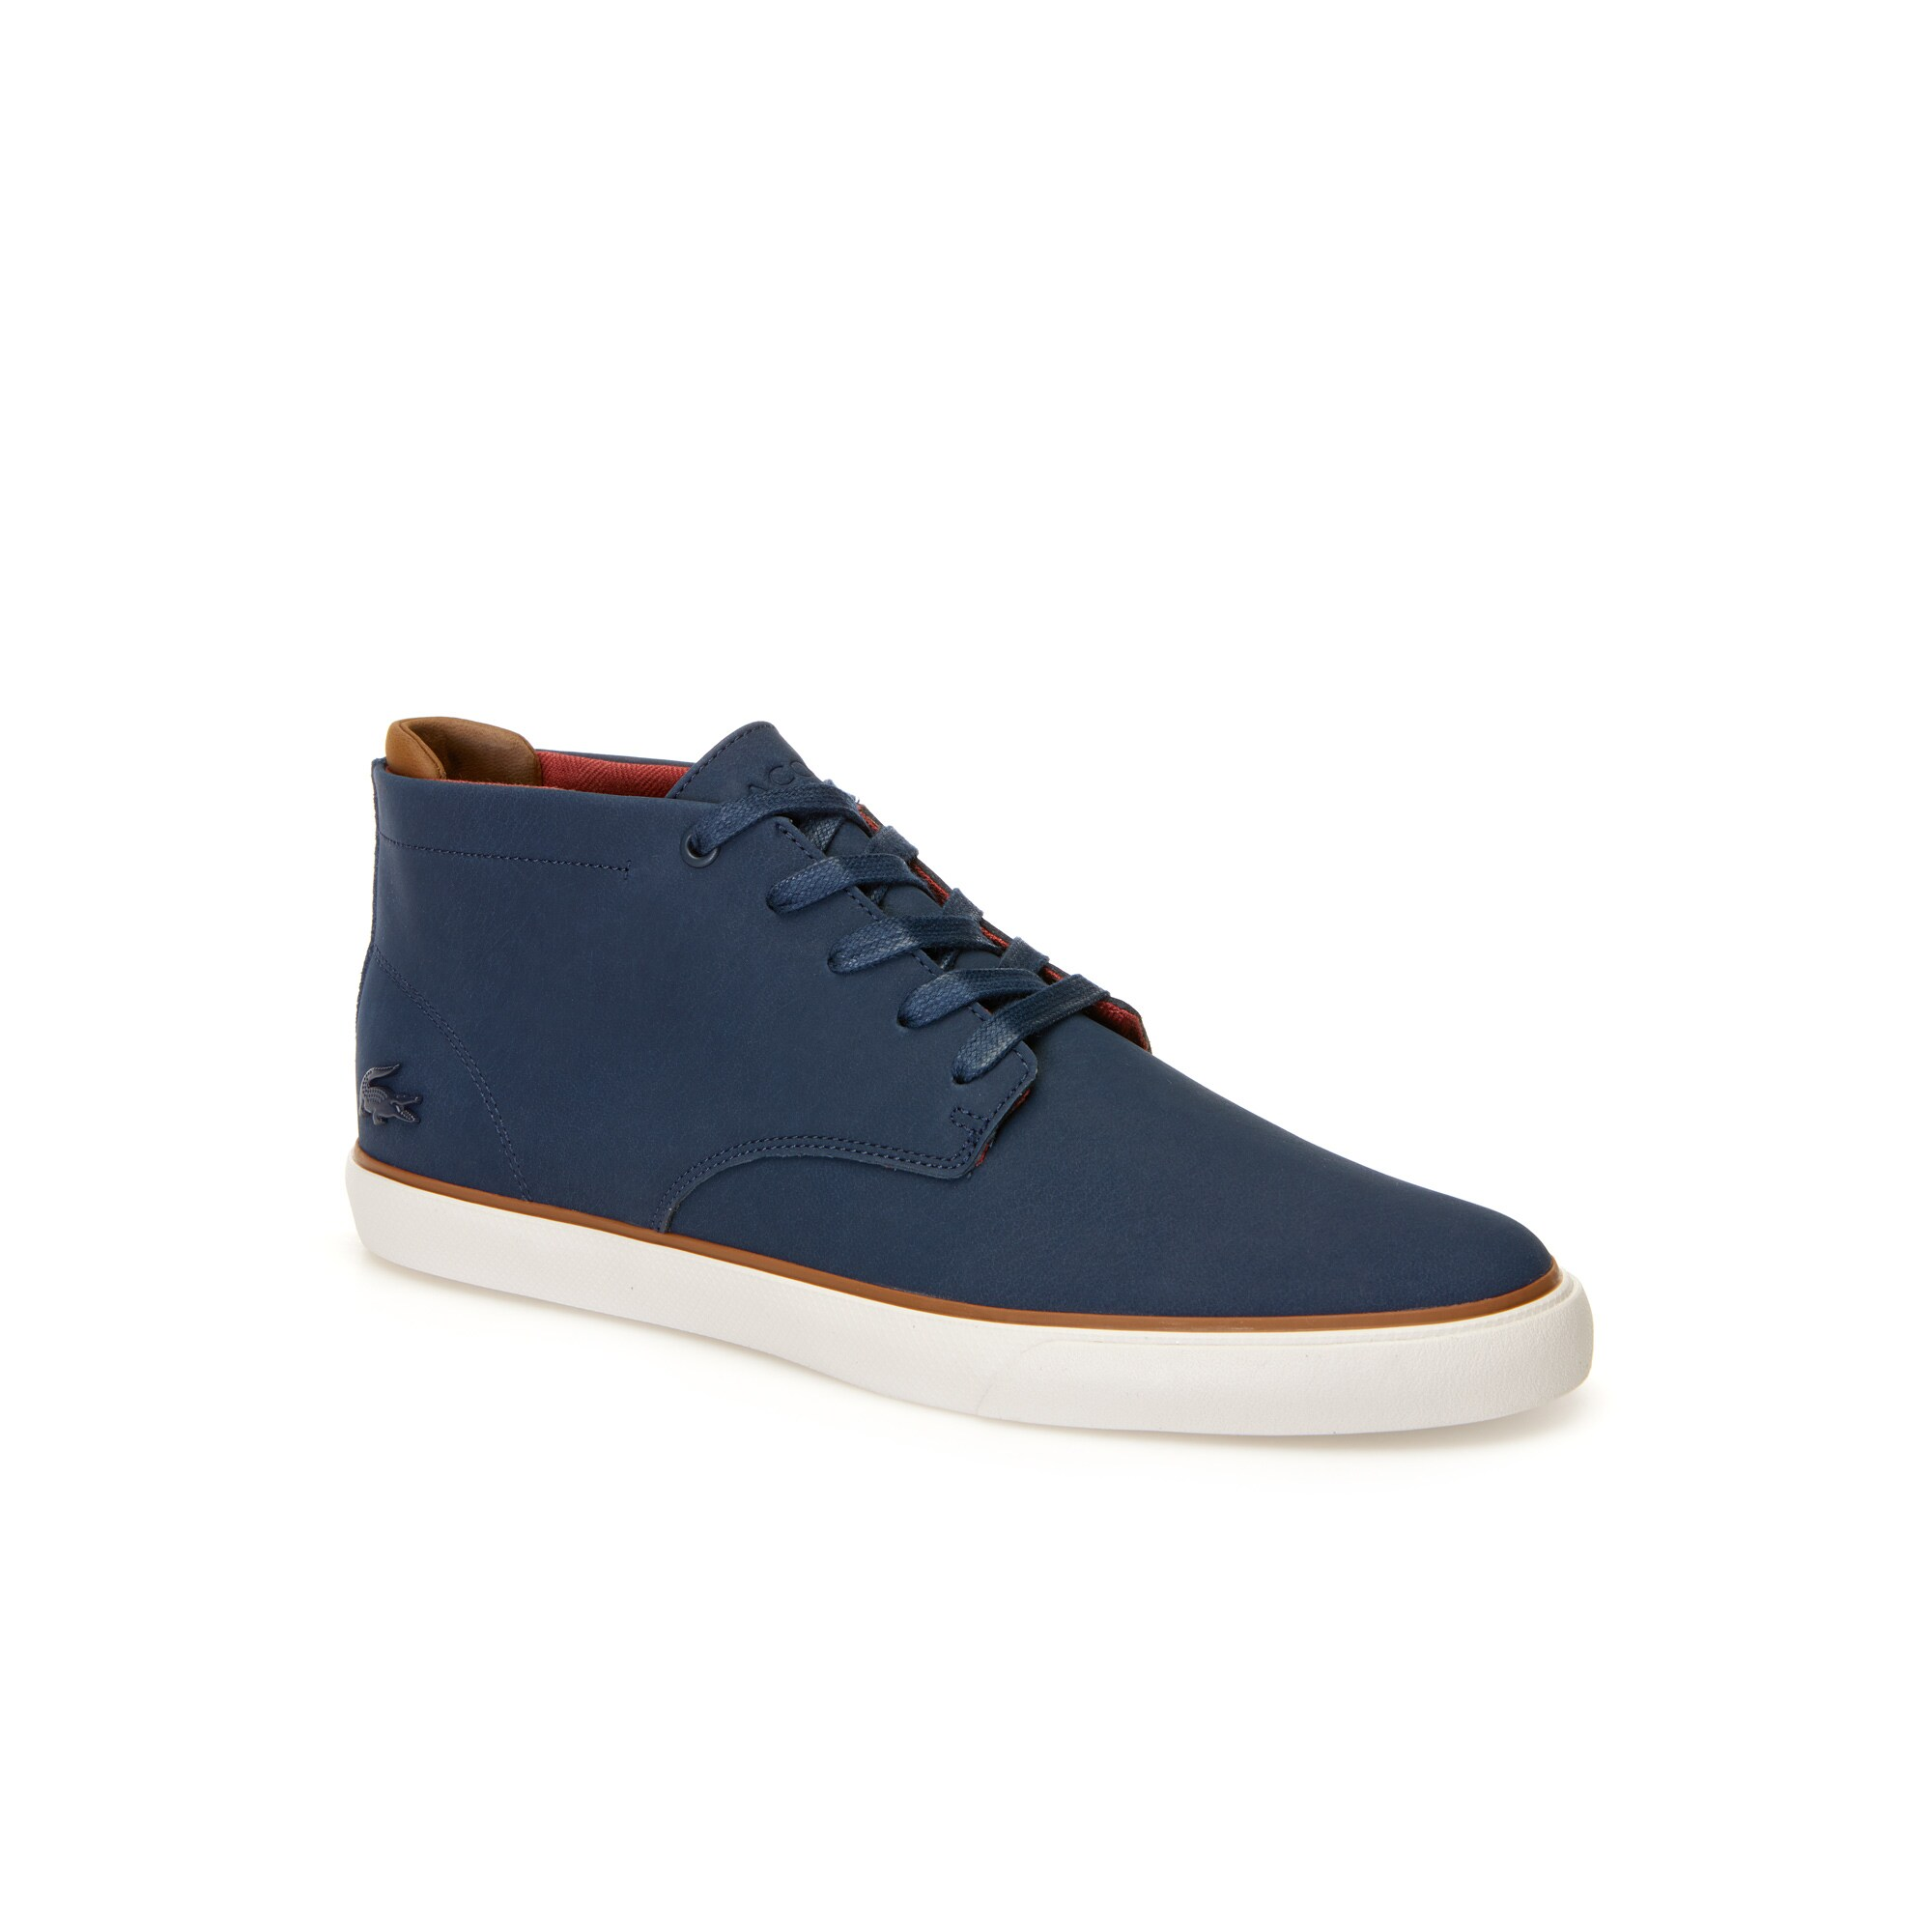 Men's Esparre Chukka Leather and Suede Trainers